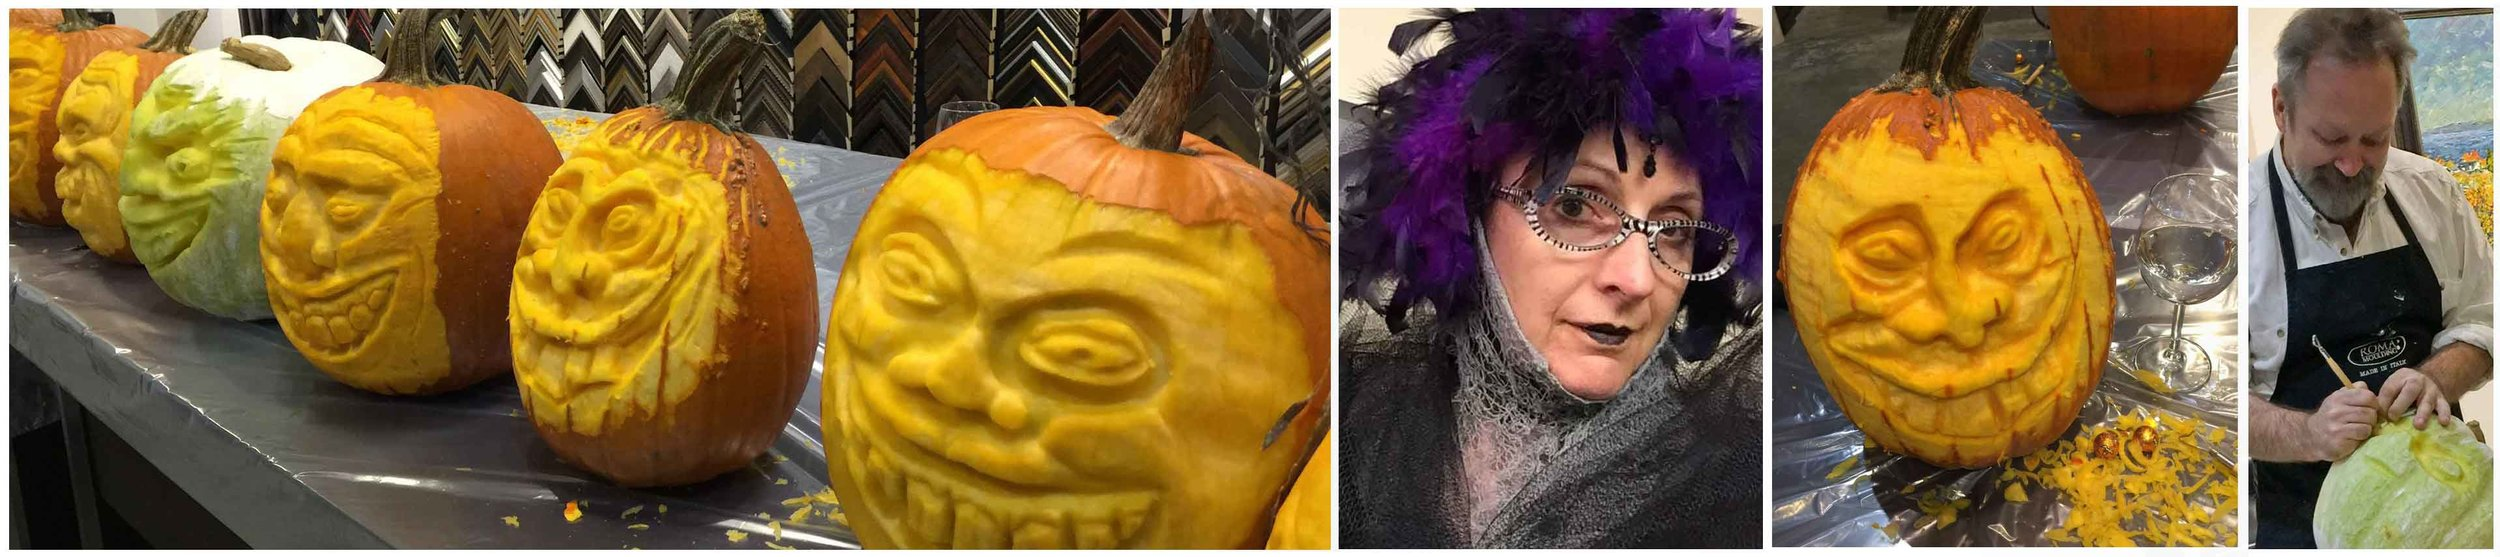 Illustrator, painter, writer, designer and Pumpkin carver  extraordinaire  – Richard Jacobson shares his secrets in creating incredible 3D Pumpkin carvings just in time for Halloween. The results – brilliant! Can't wait for next year.   www.artworldfineart.com